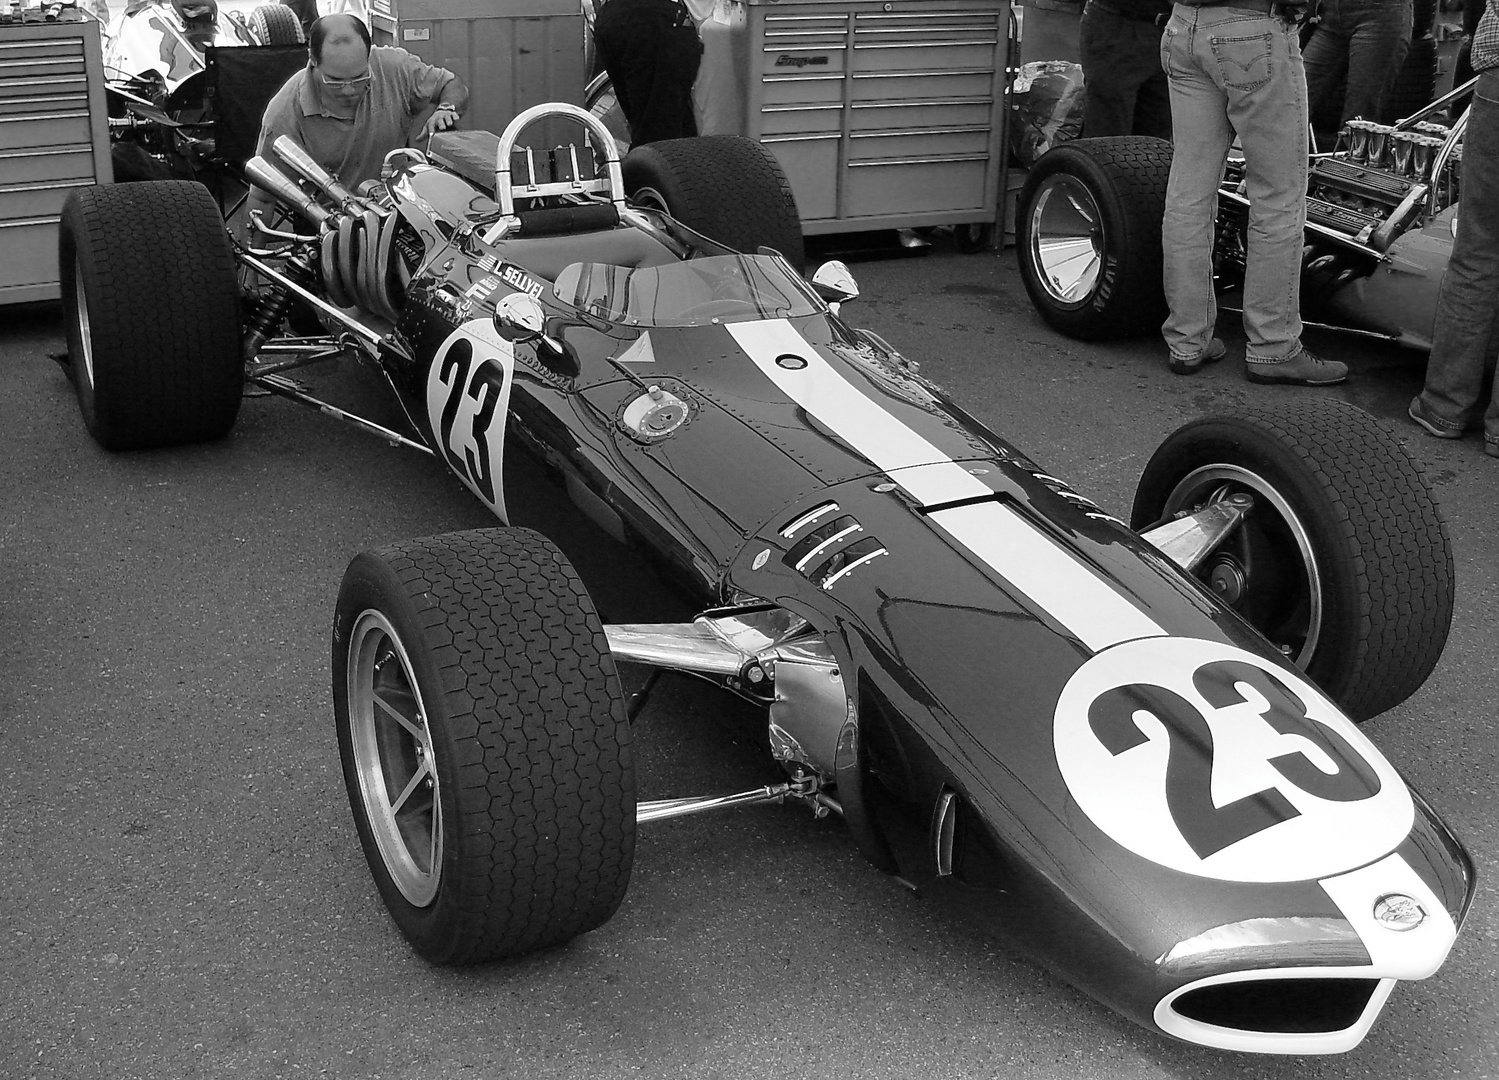 gurney eagle weslake mk1 vielleicht das sch nste formel 1 auto monte carlo foto bild sport. Black Bedroom Furniture Sets. Home Design Ideas